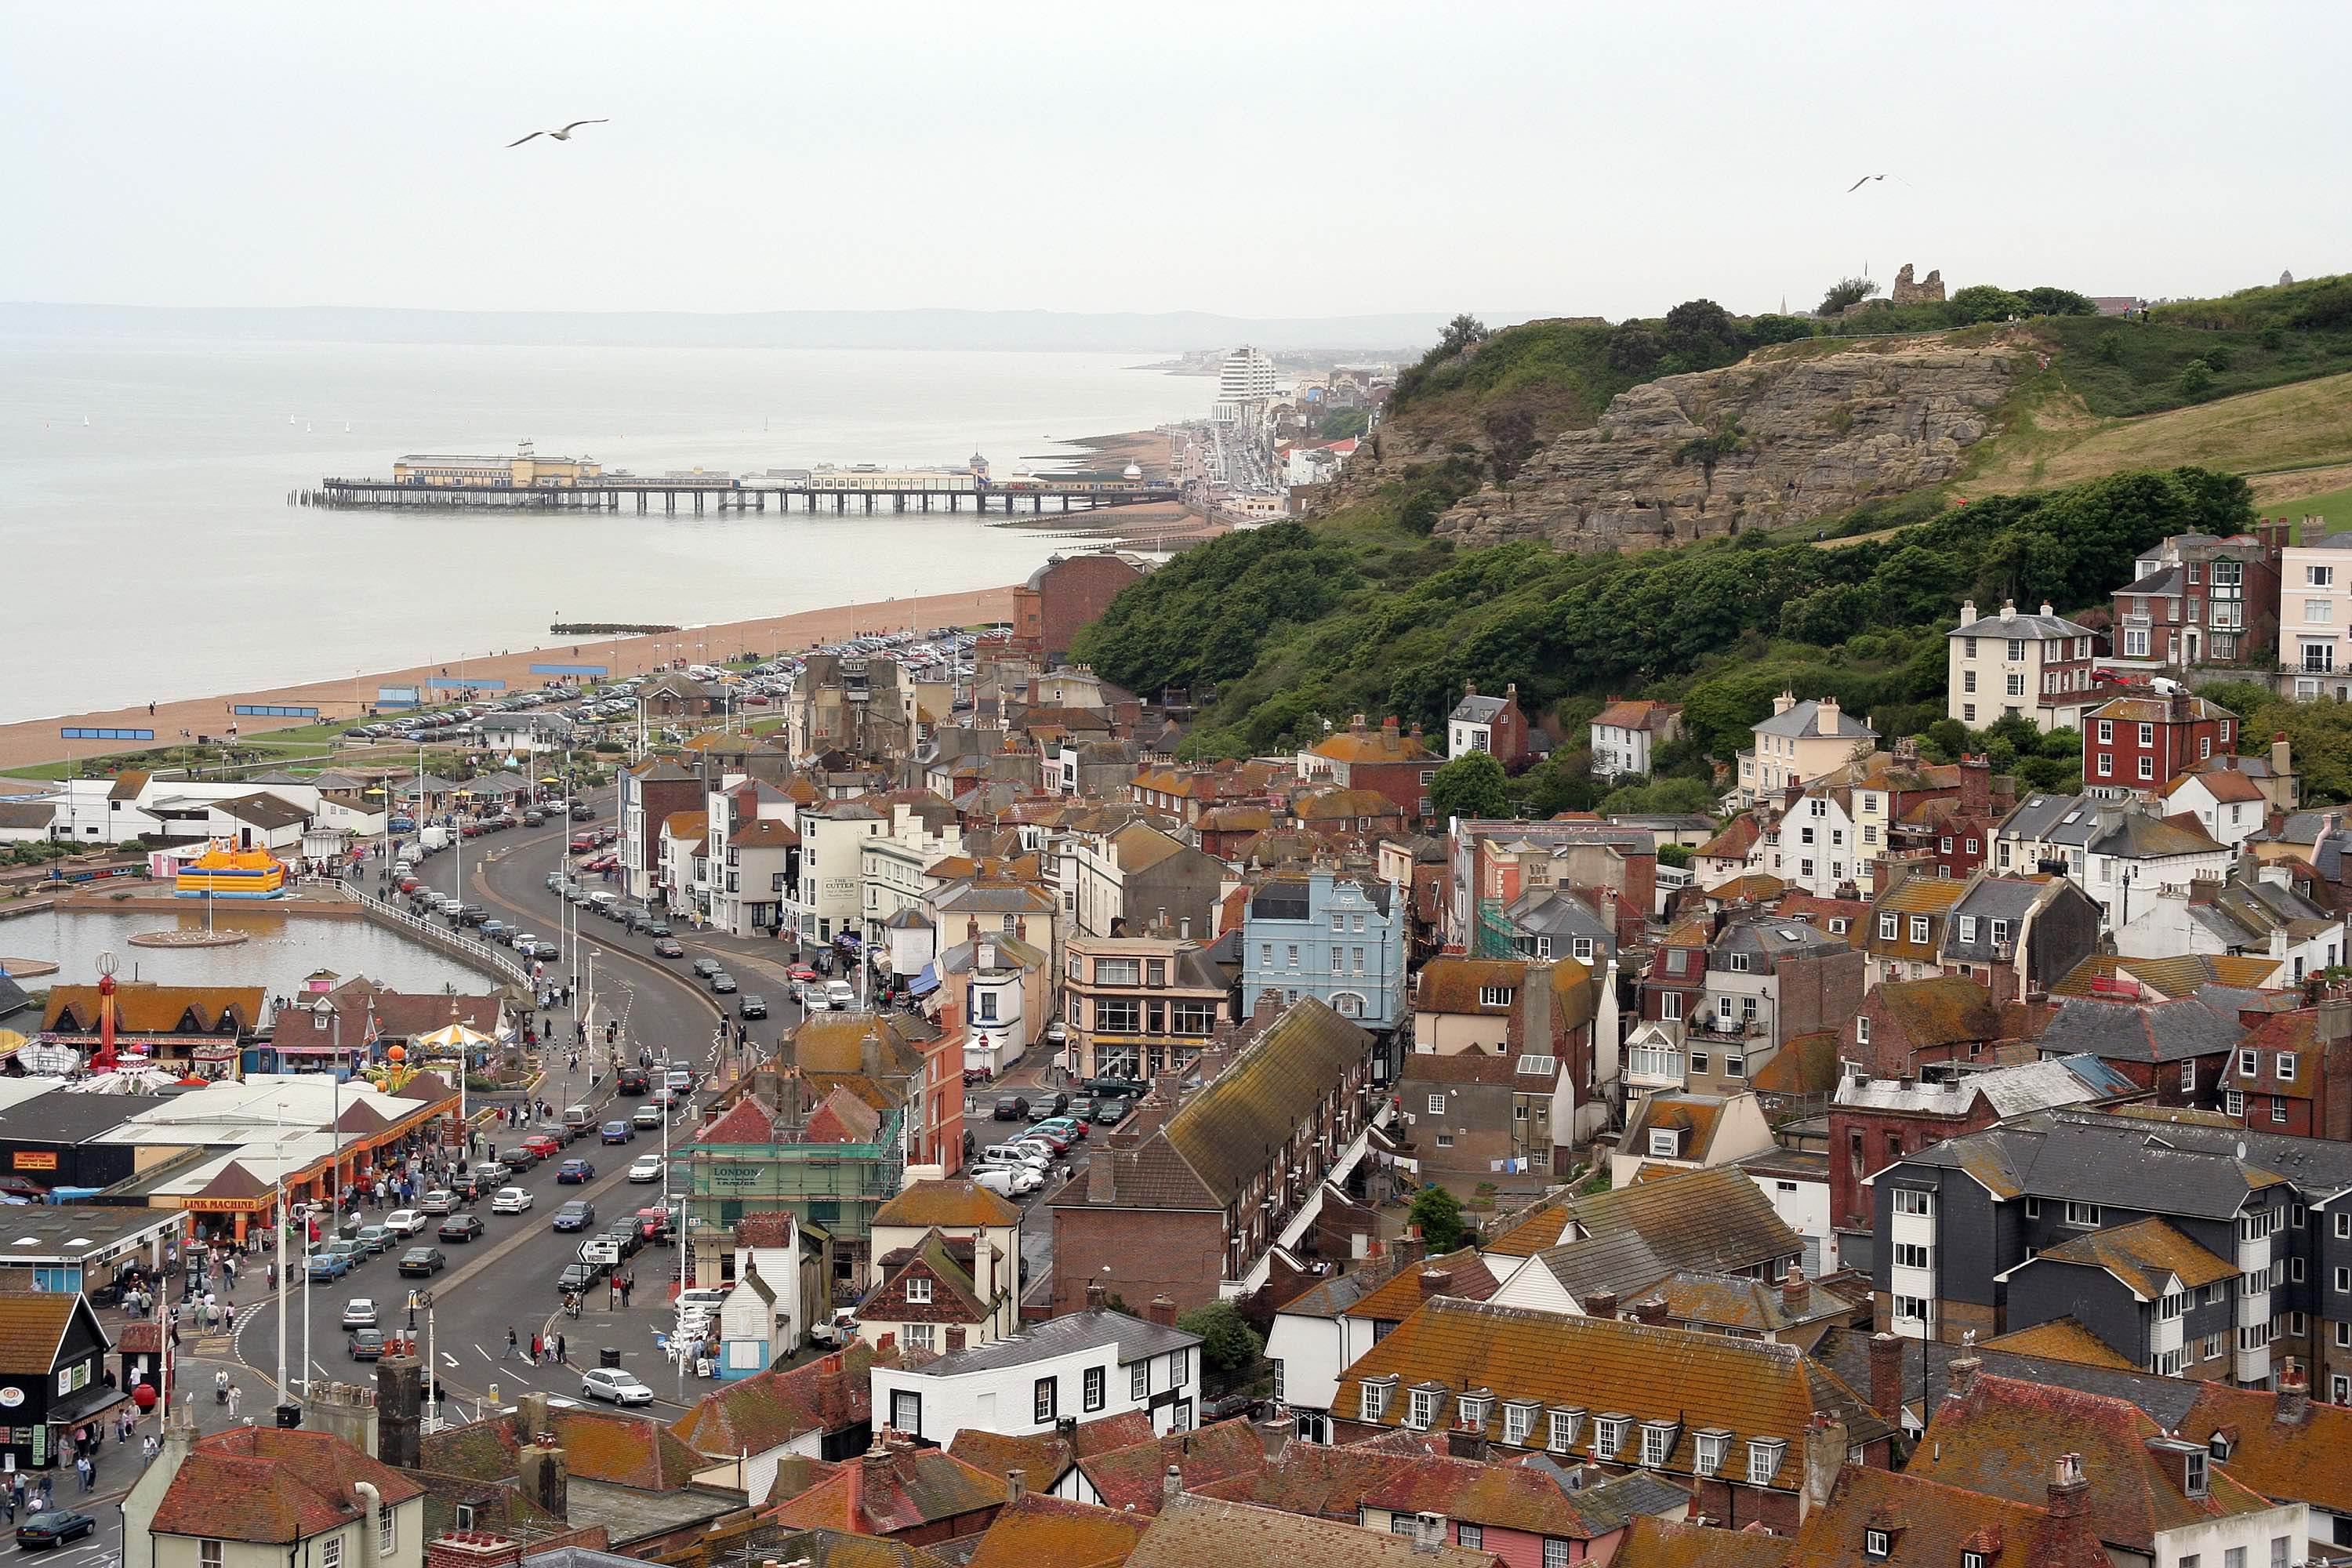 Overlooking Hastings Old Town and the sea front